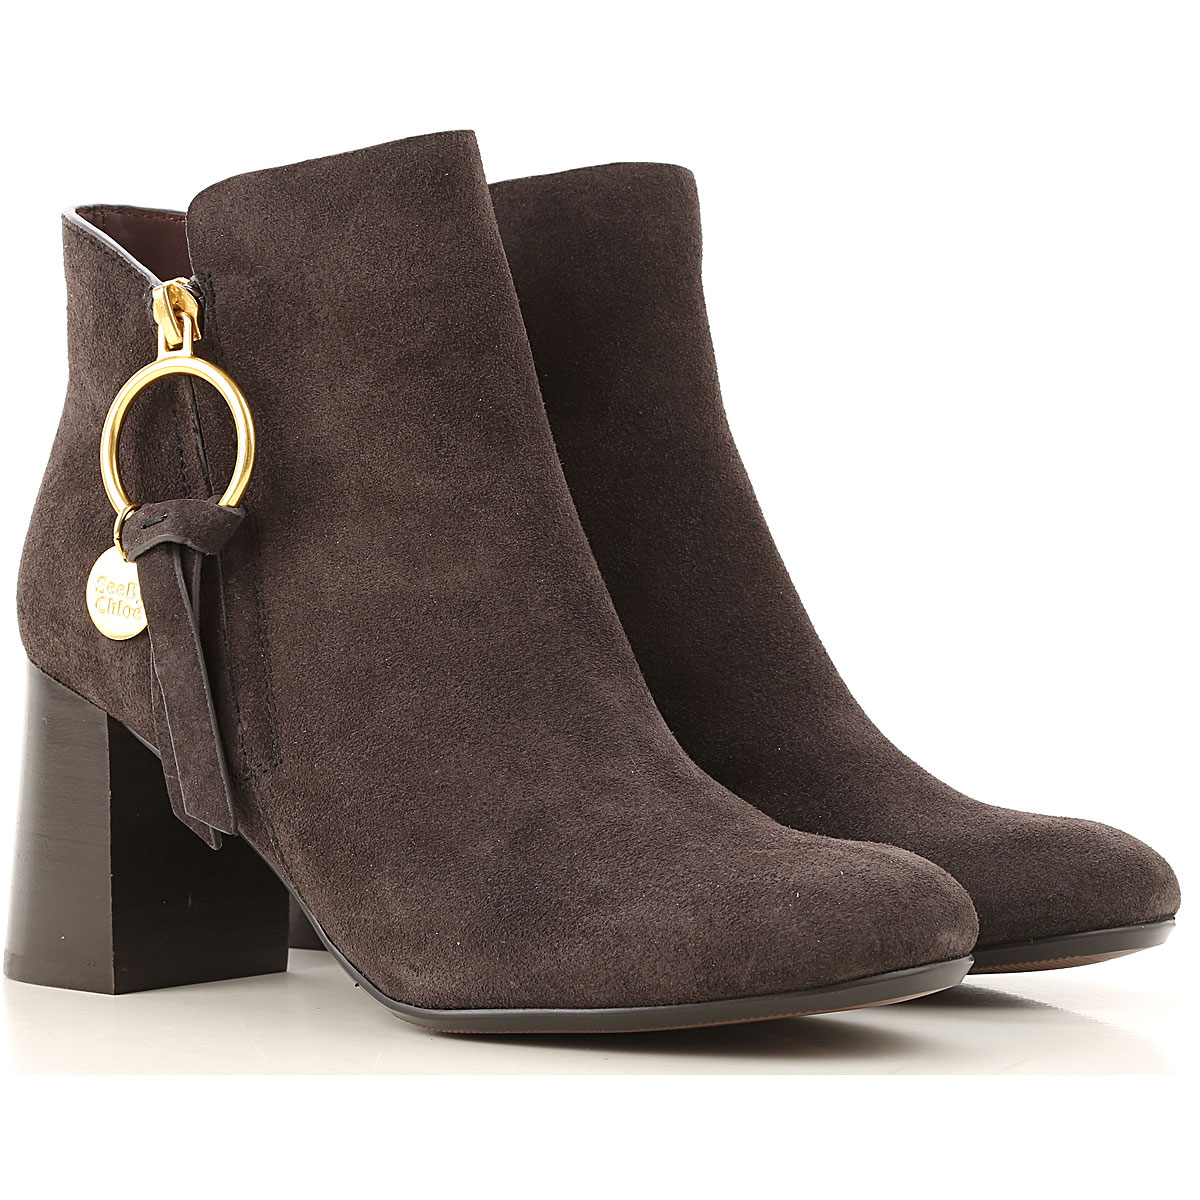 See By Chloe Boots for Women, Booties On Sale, Graphite, suede, 2019, 10 11 7 8 8.5